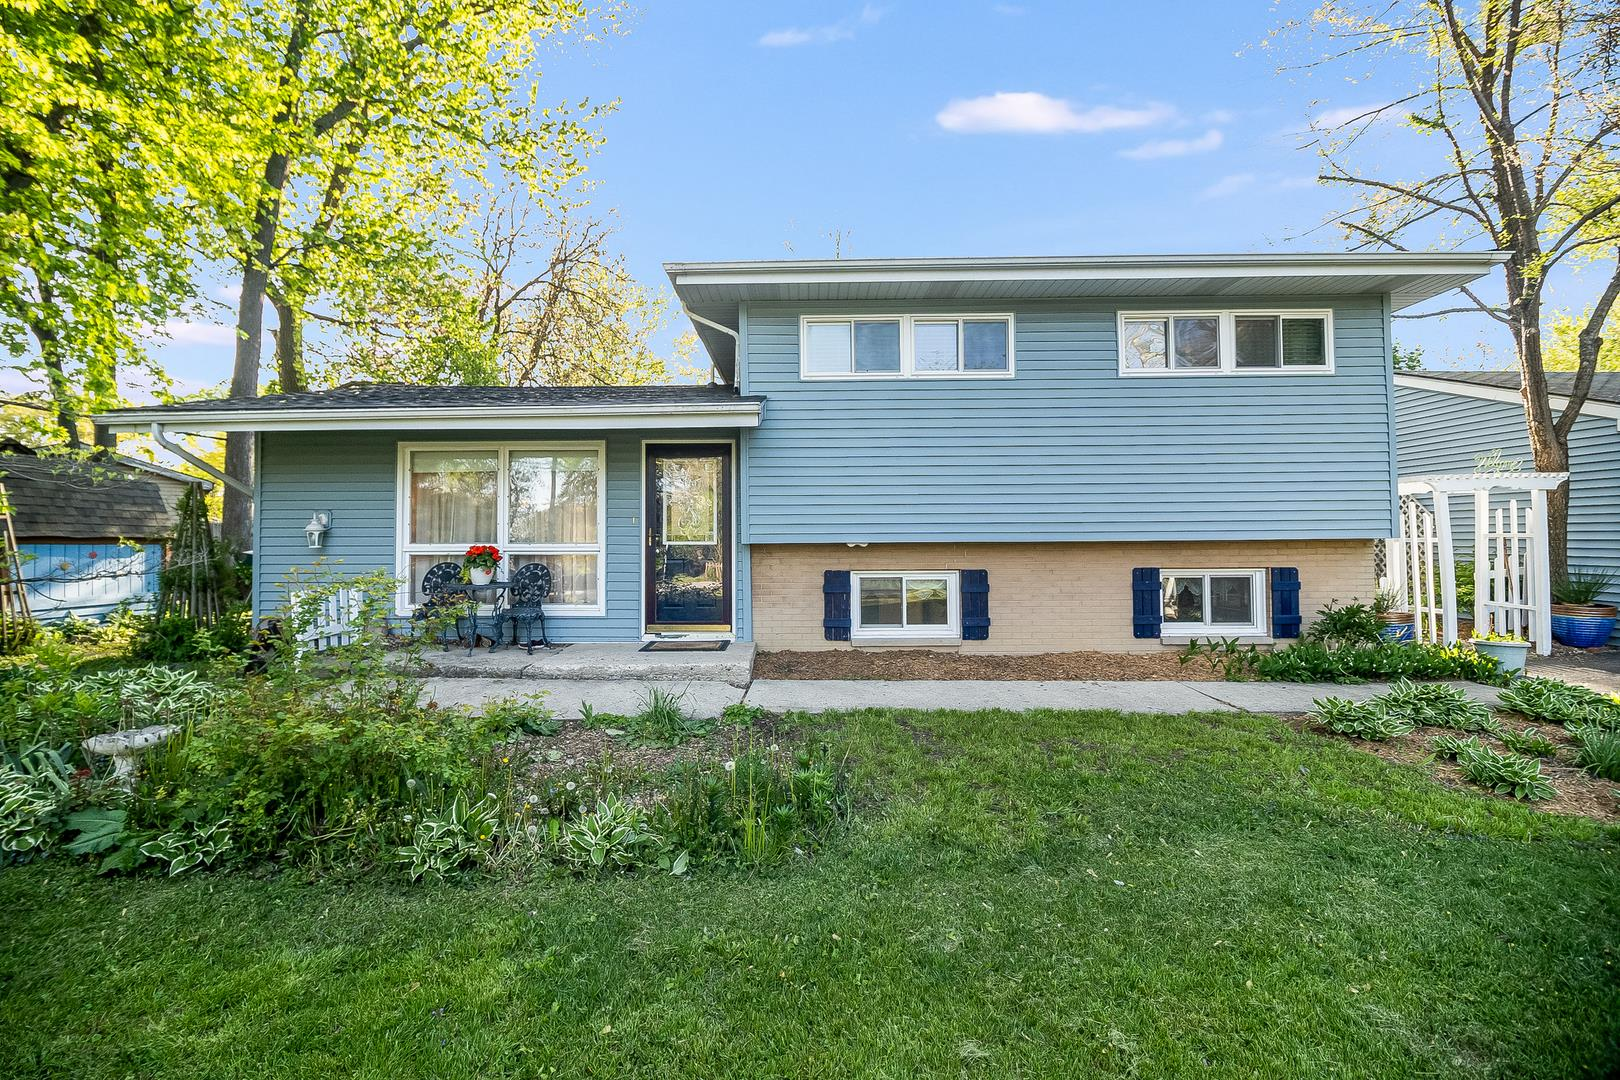 2N048 Virginia Avenue, Glen Ellyn, IL 60137 - #: 11086708